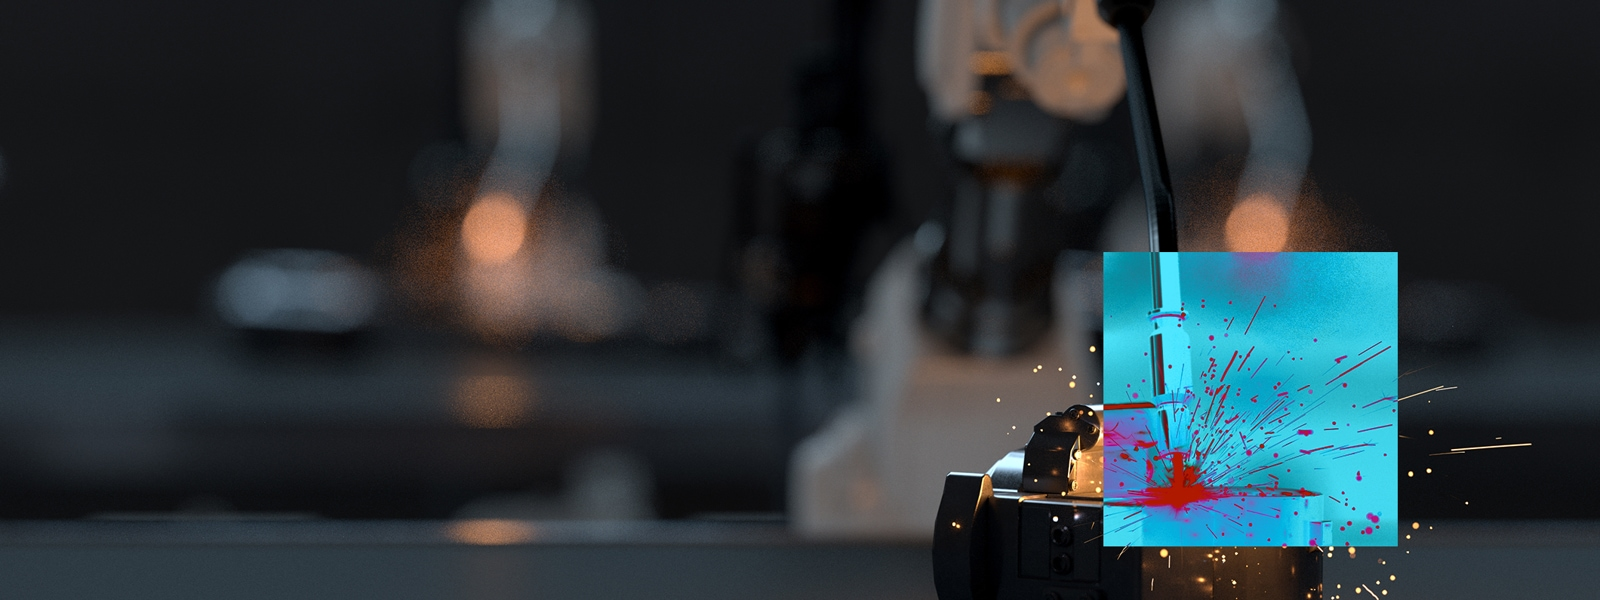 Welder in manufacturing with abstracted AI overlay